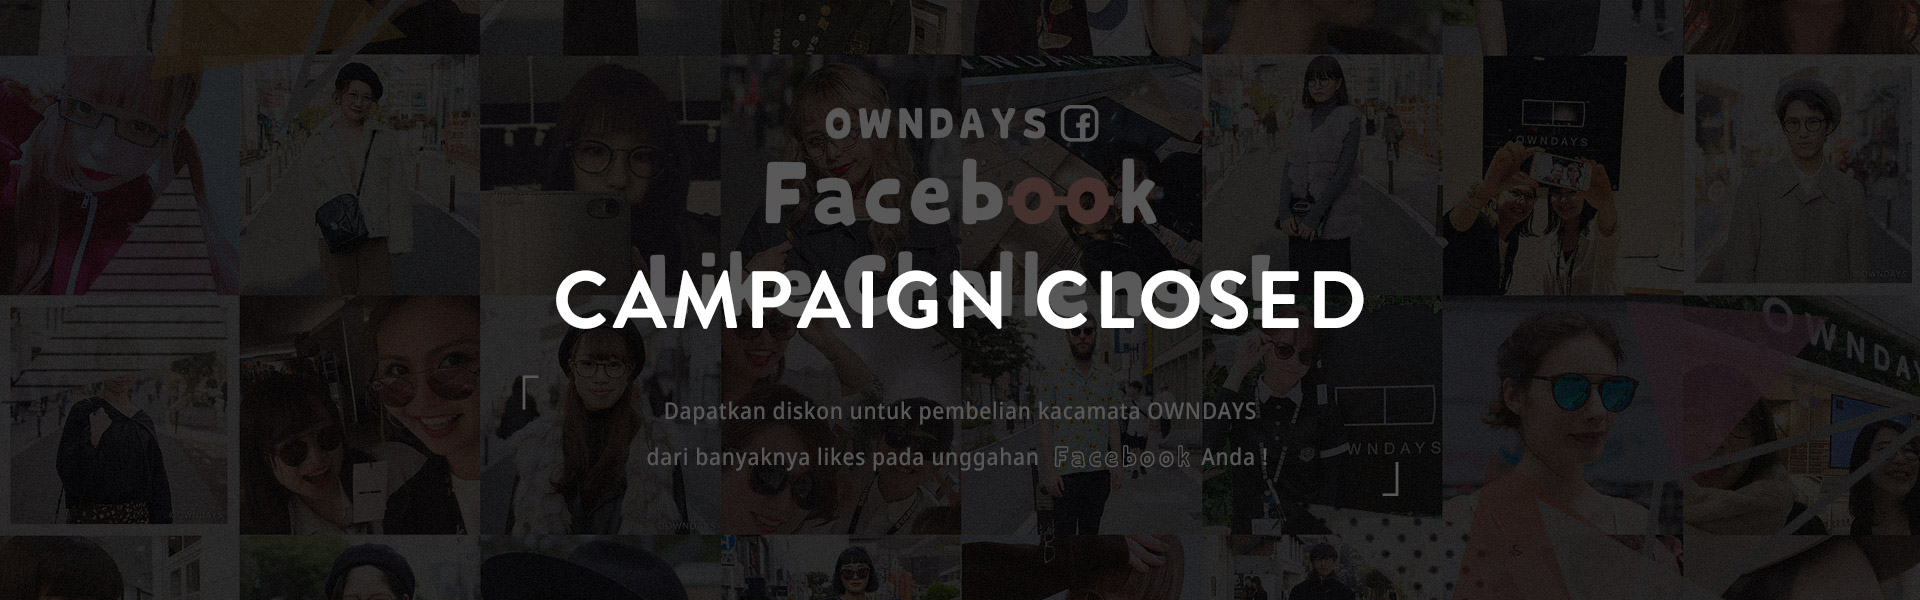 OWNDAYS Facebook Like Challenge